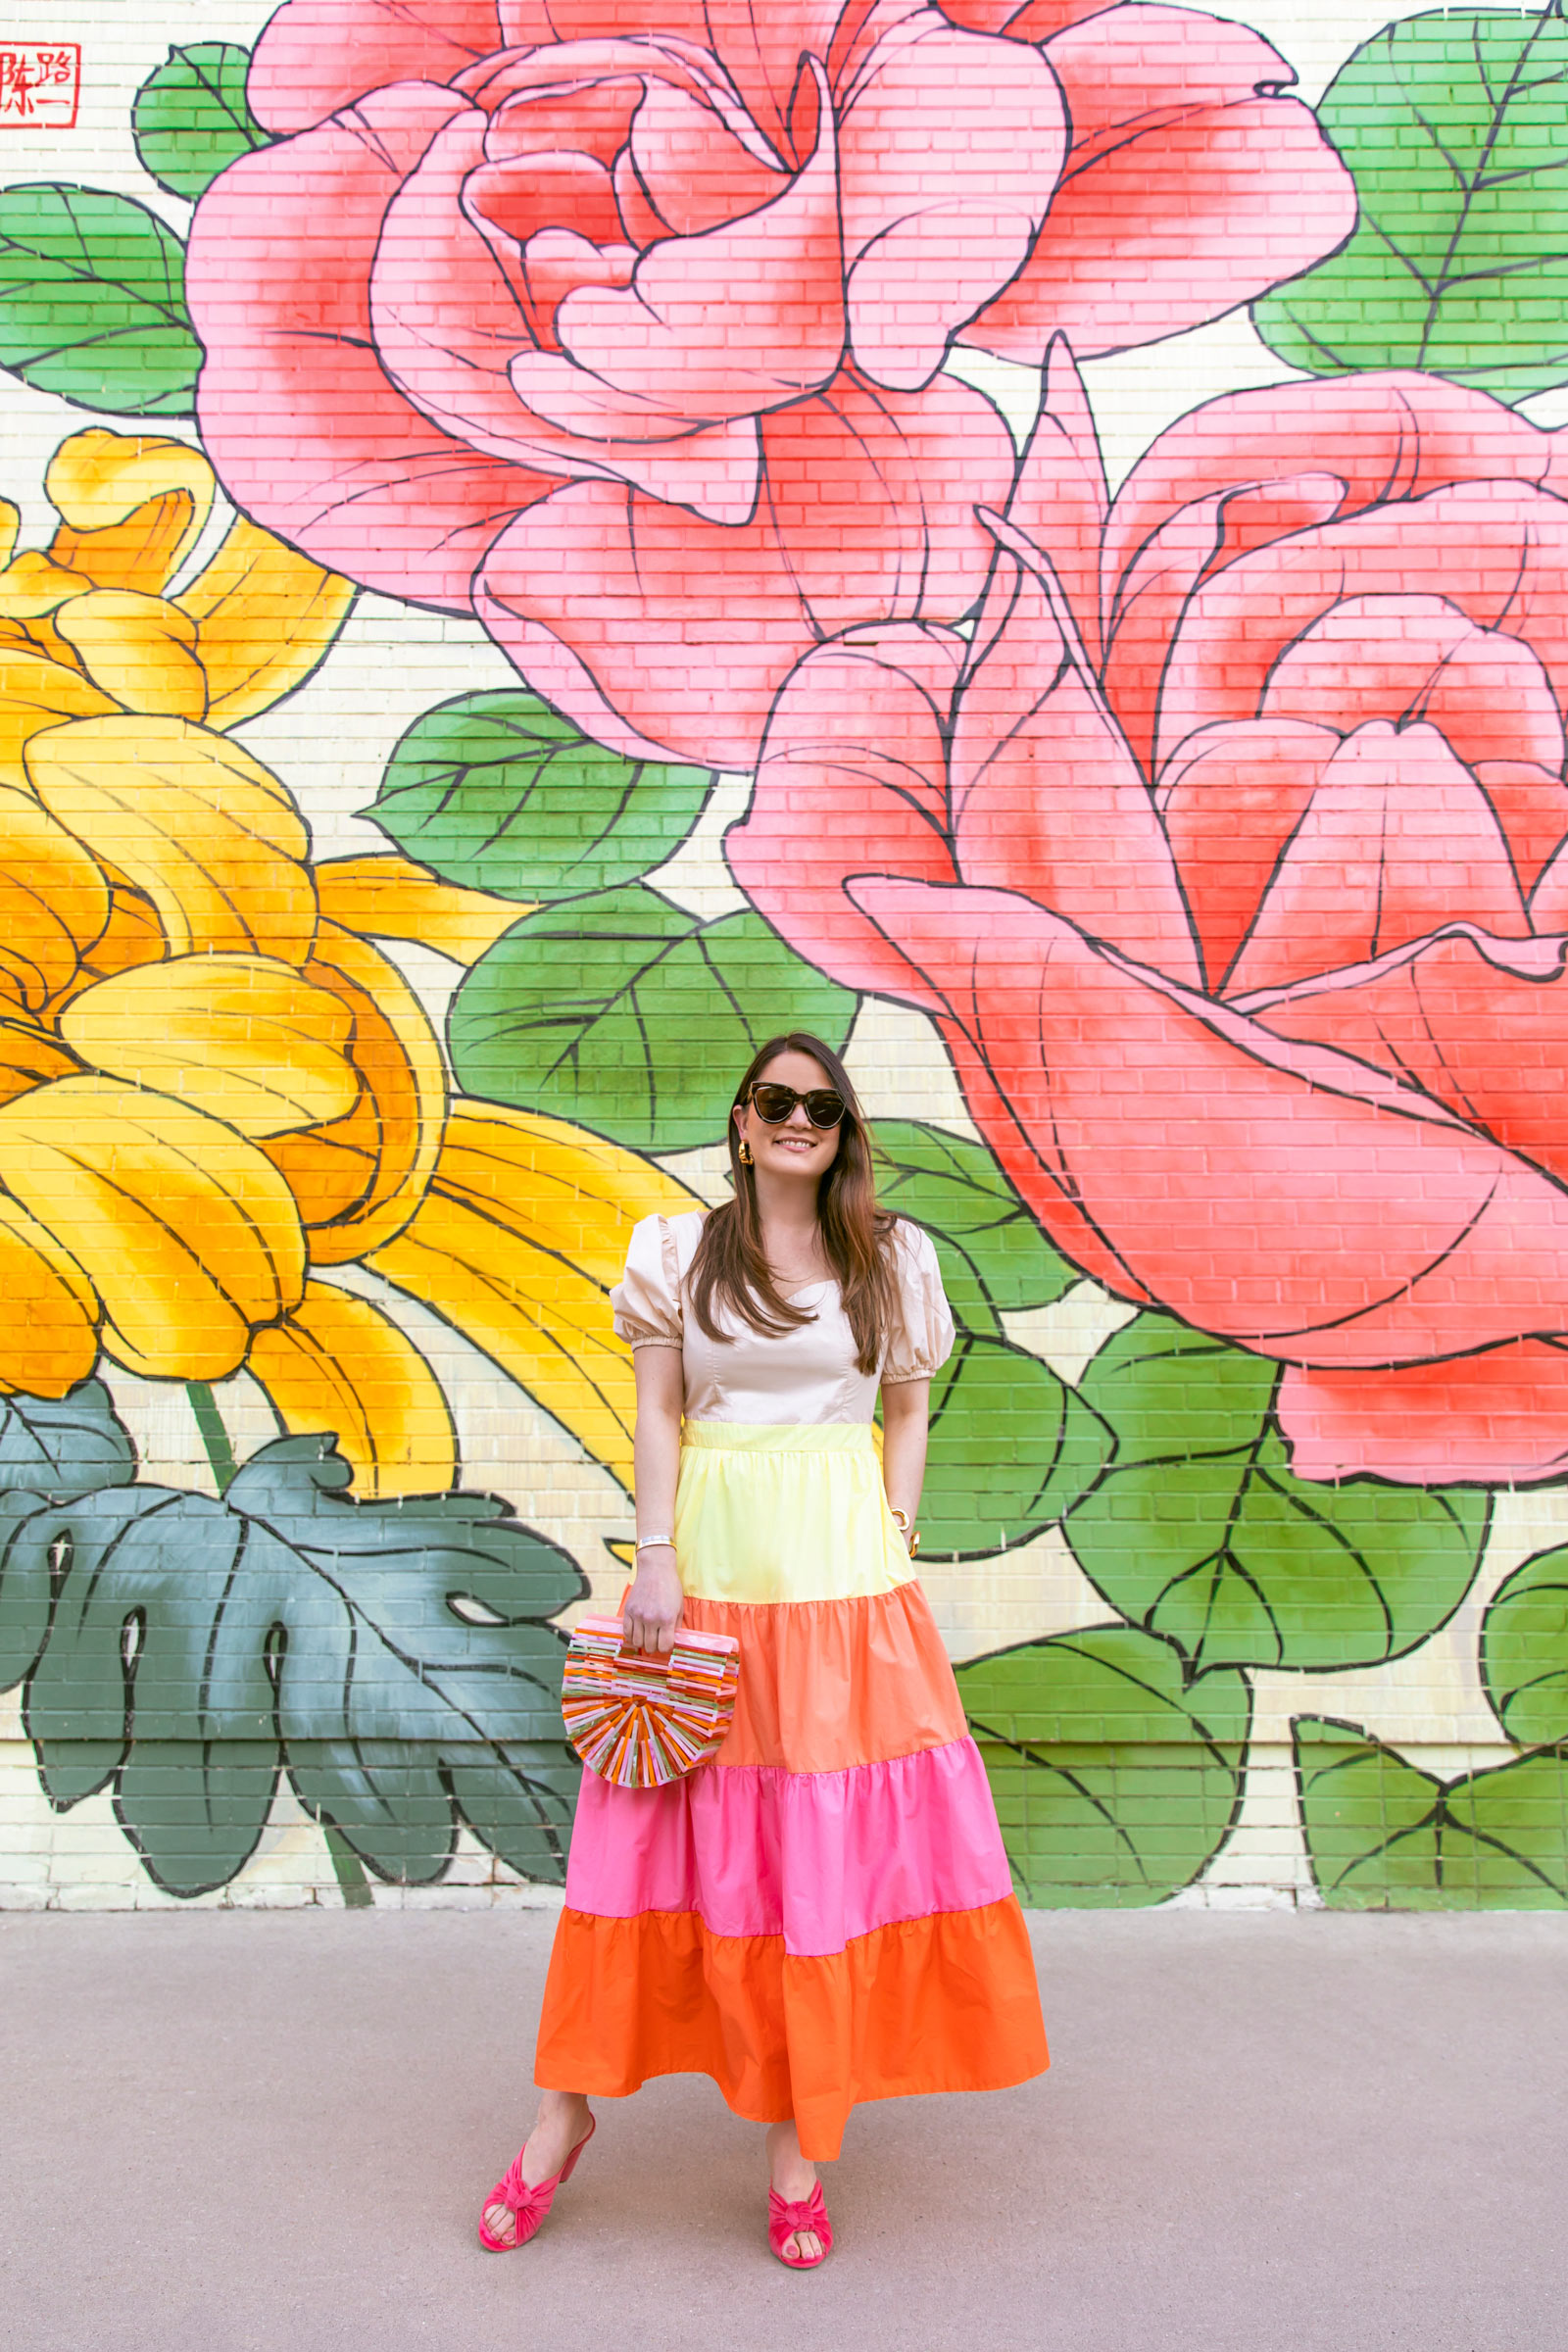 Chicago Floral Mural